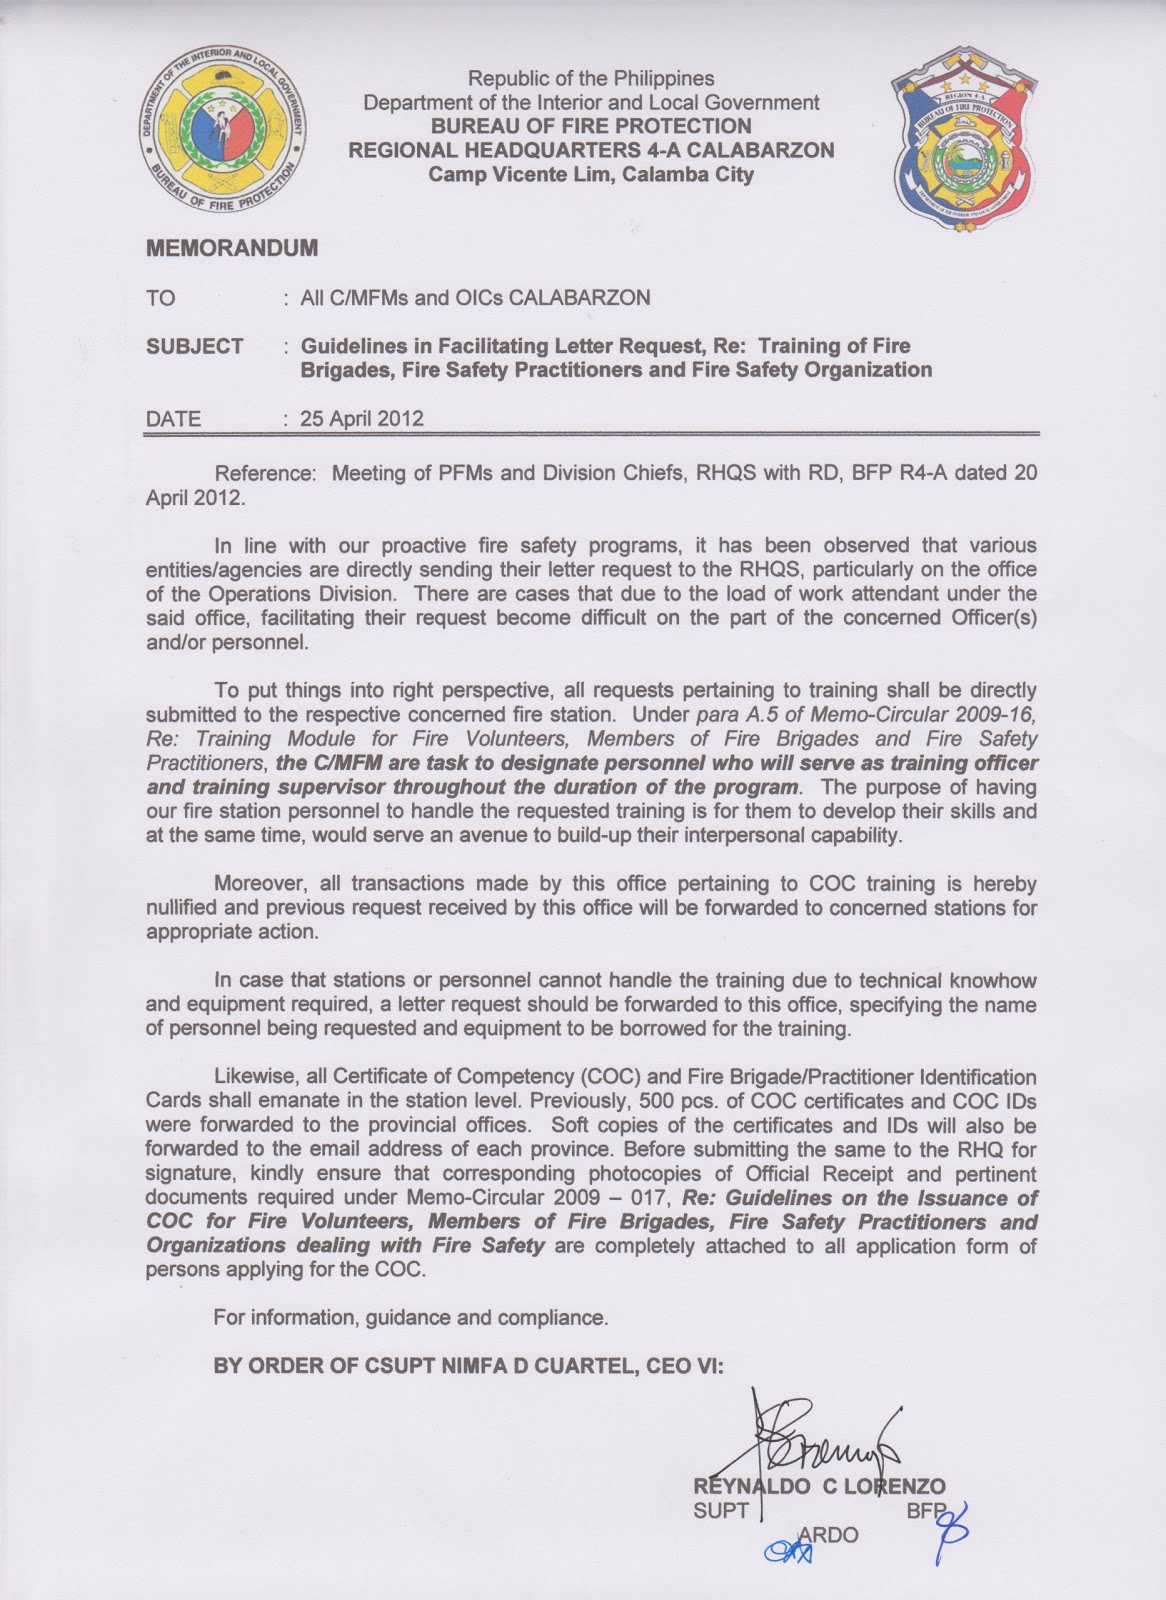 opd batangas archives  memo guidelines in facilitating letter request re training of fire brigades fire safety practitioners and fire safety organization